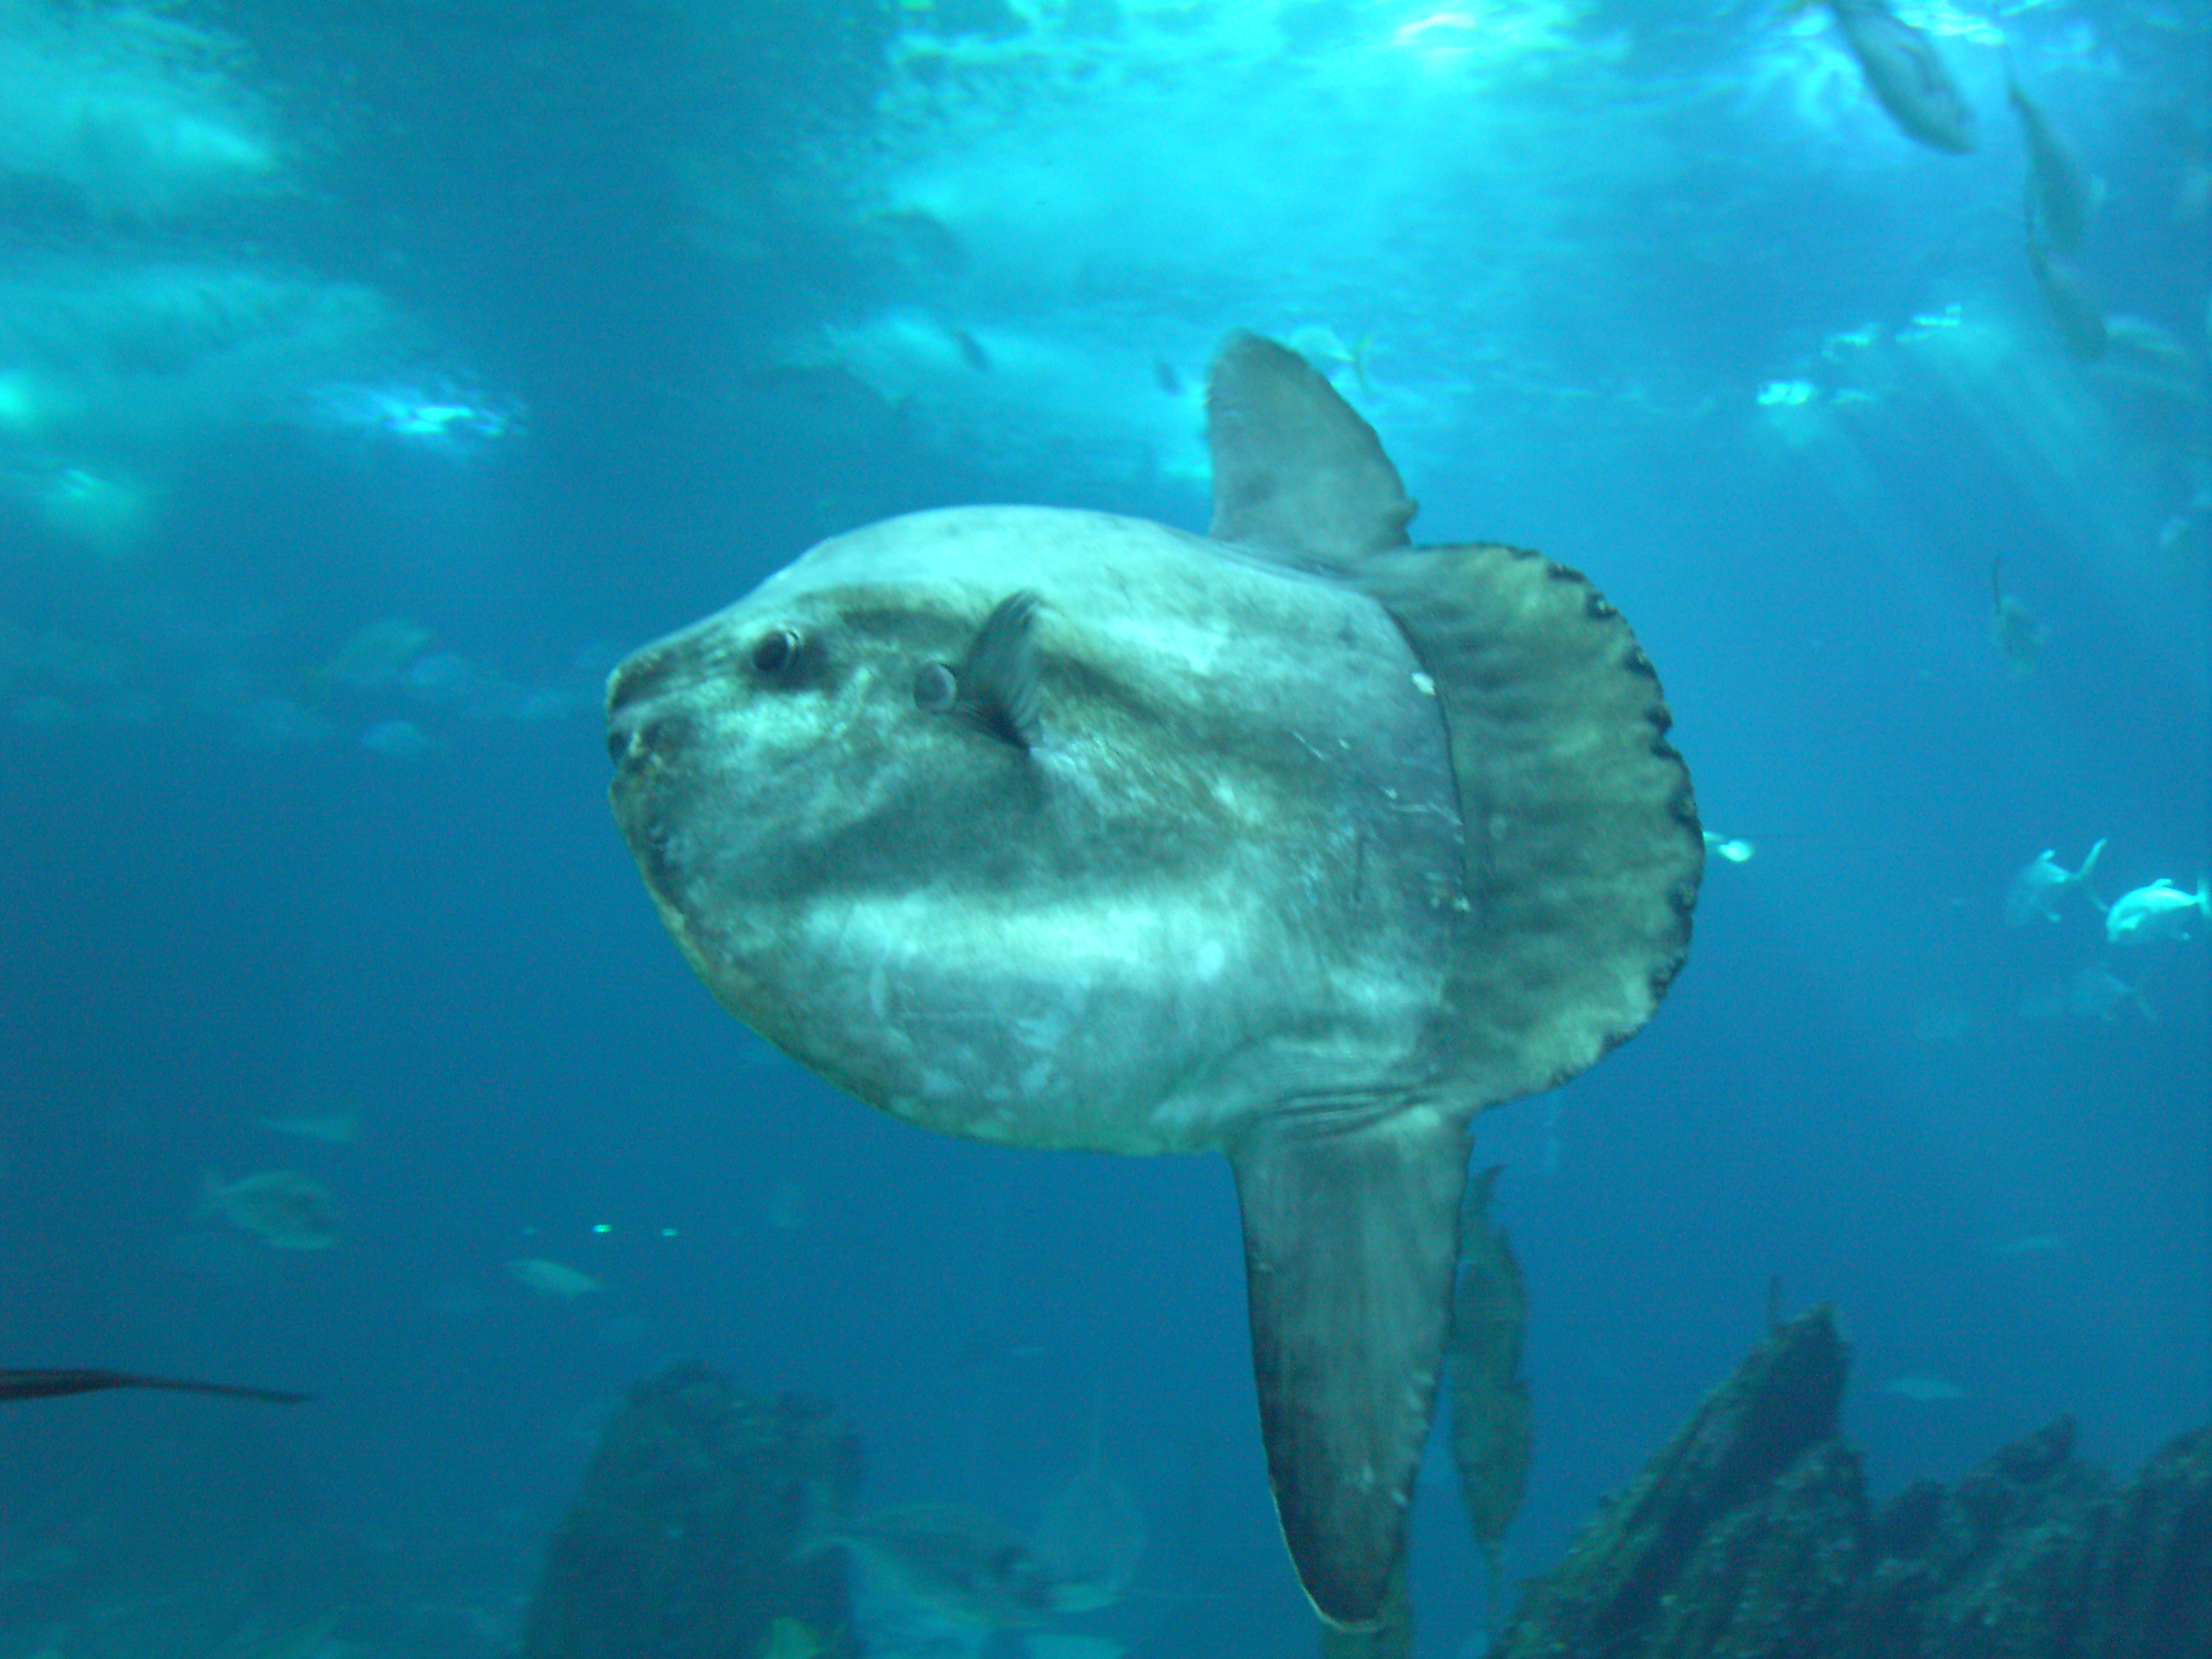 File:Mola-mola-Lisboa-20051020.jpg - Wikipedia, the free encyclopedia